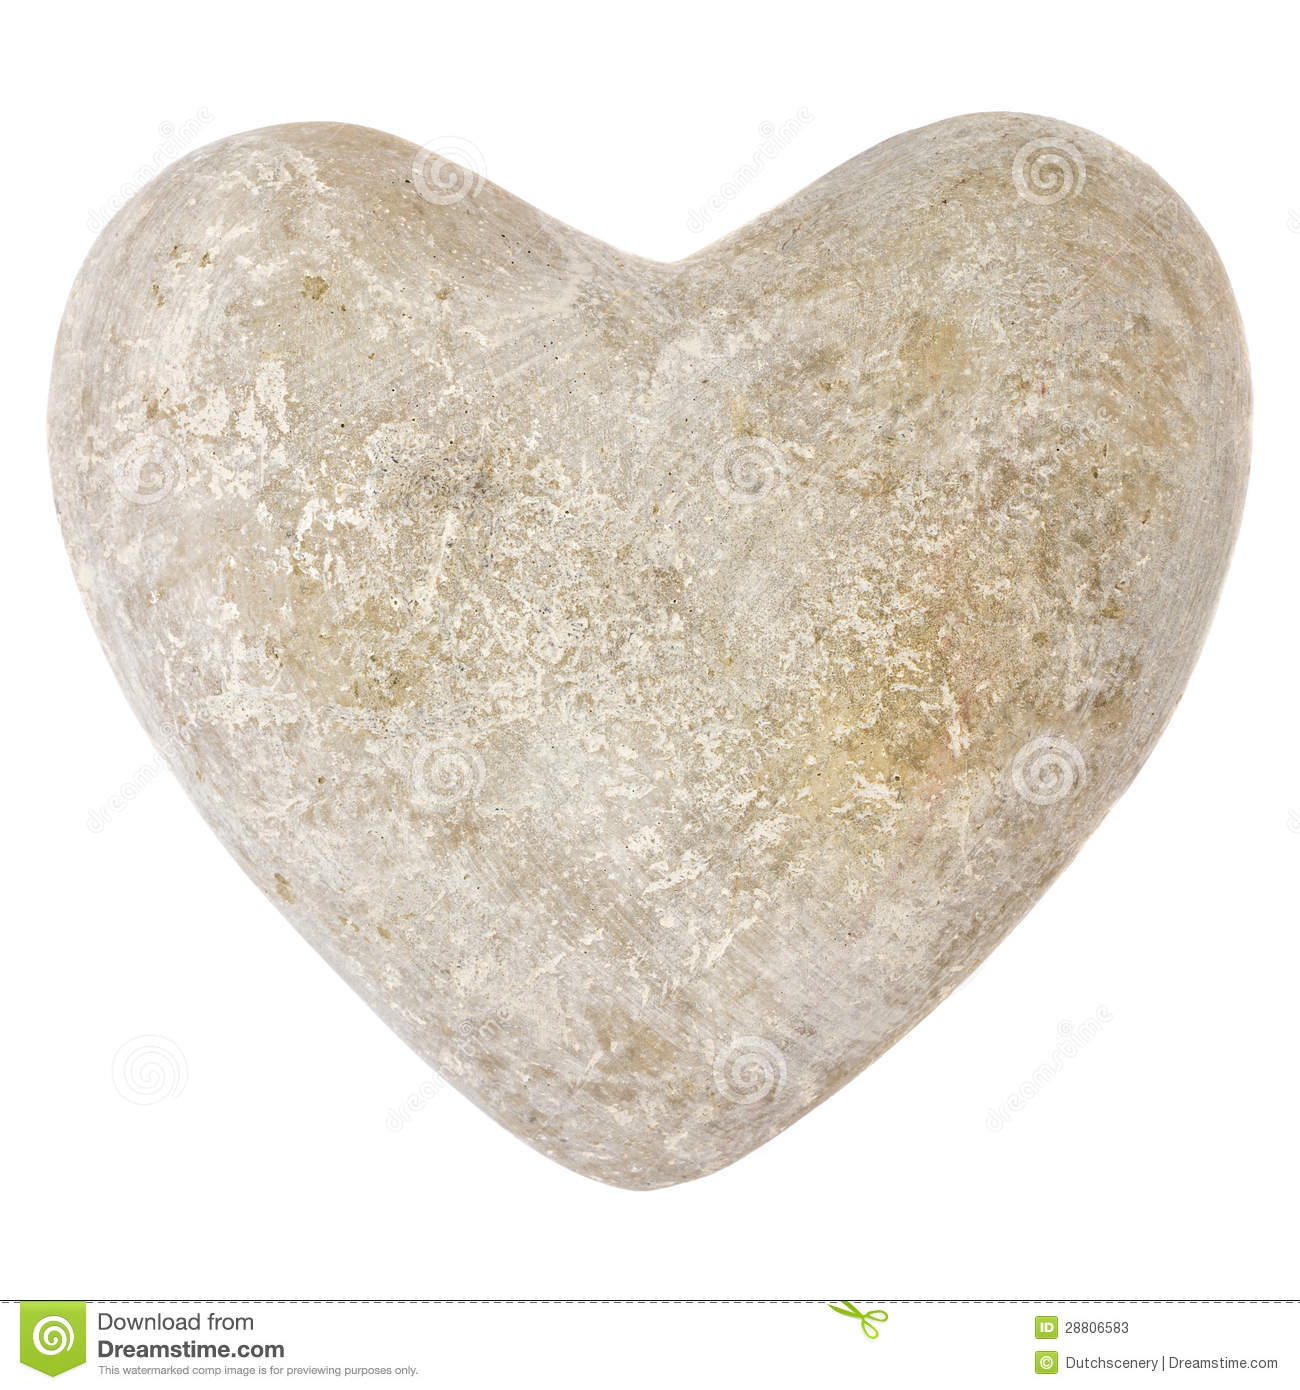 Stone Heart Shape Isolated On White Stock Image  Image. Bohemian Style Wedding Wedding Rings. Solid Stone Rings. Square Round Wedding Rings. $7000 Wedding Rings. Princess Wales Engagement Rings. Wokka Wokka Wedding Rings. 40 Carat Rings. Cusion Engagement Rings